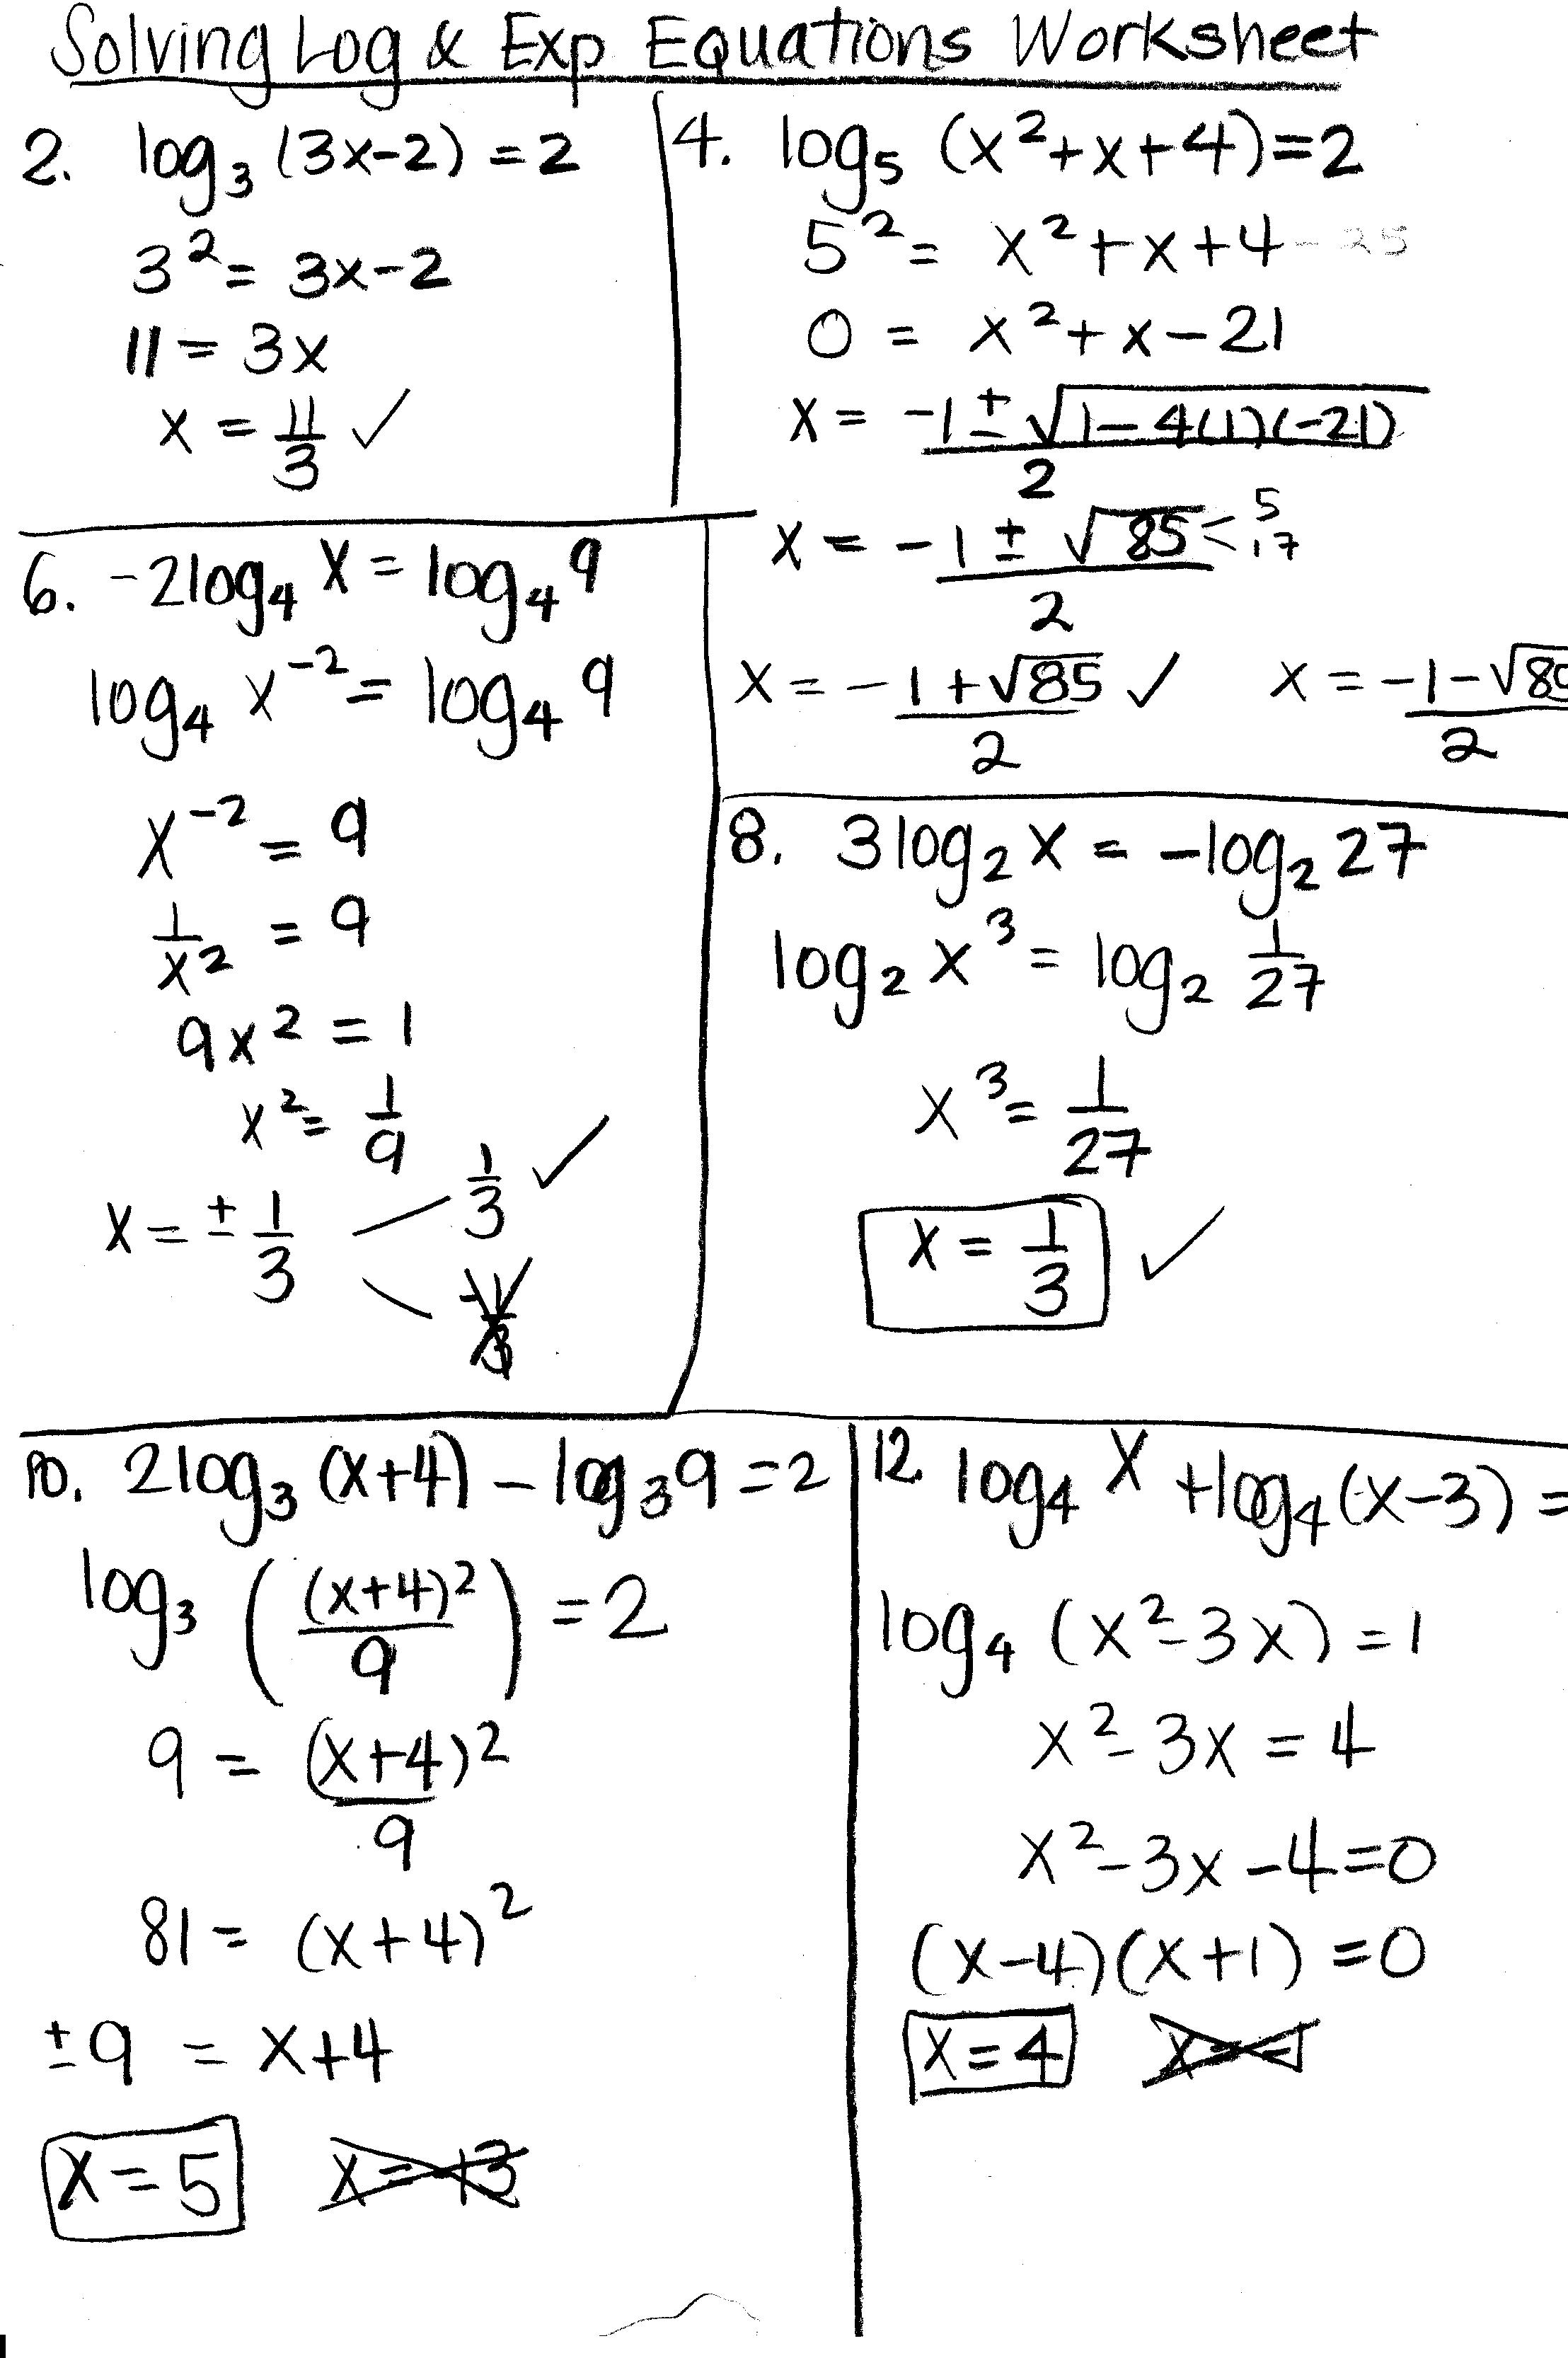 worksheet Worksheet Solving Exponential Equations worksheet solving exponential equations abitlikethis with unit 8 material trig identities and equations